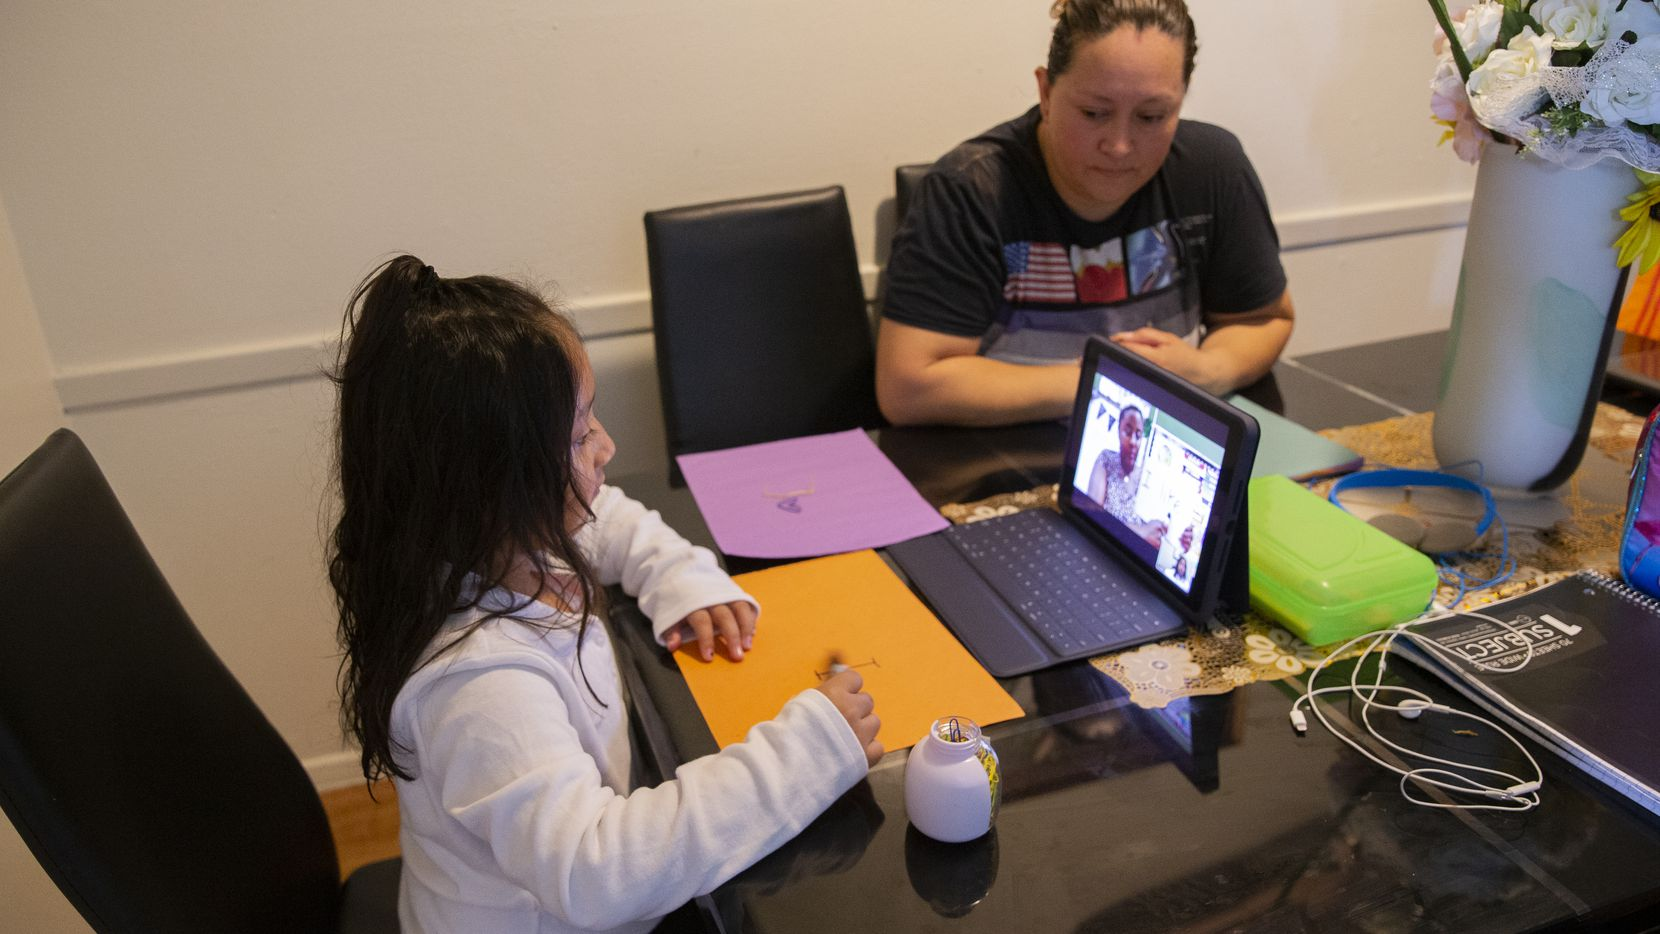 Adali Arriaza watches as her daughter Daysha Cojulum, 5, attends her virtual class at the kitchen table on Sept. 16, 2020 in northwest Dallas. Cojulum uses her mother's phone to connect to the internet due to the DISD hotspots not working properly or running out of the allotted data. (Juan Figueroa/ The Dallas Morning News)